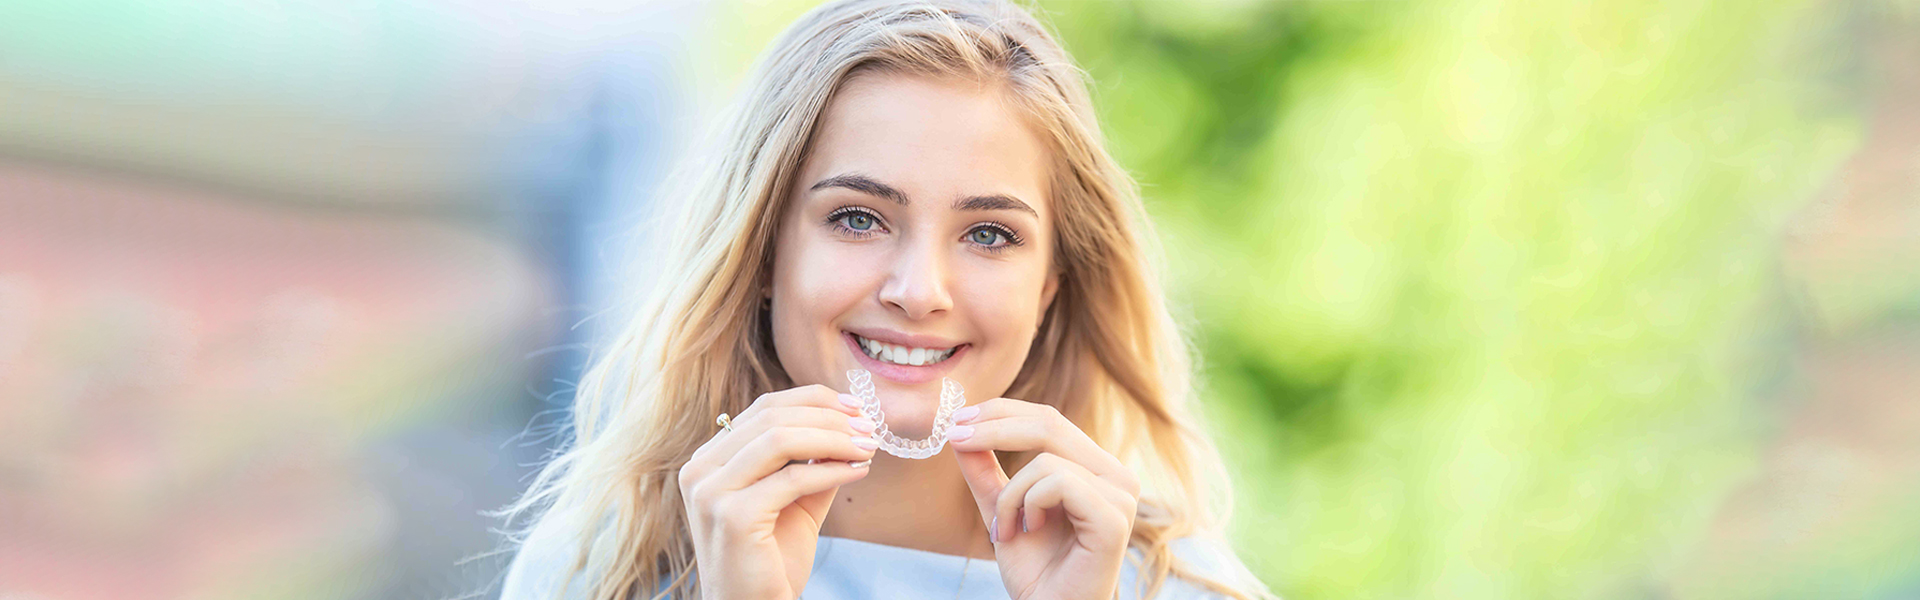 Jumpstarting a Great Smile with Invisalign© Treatment